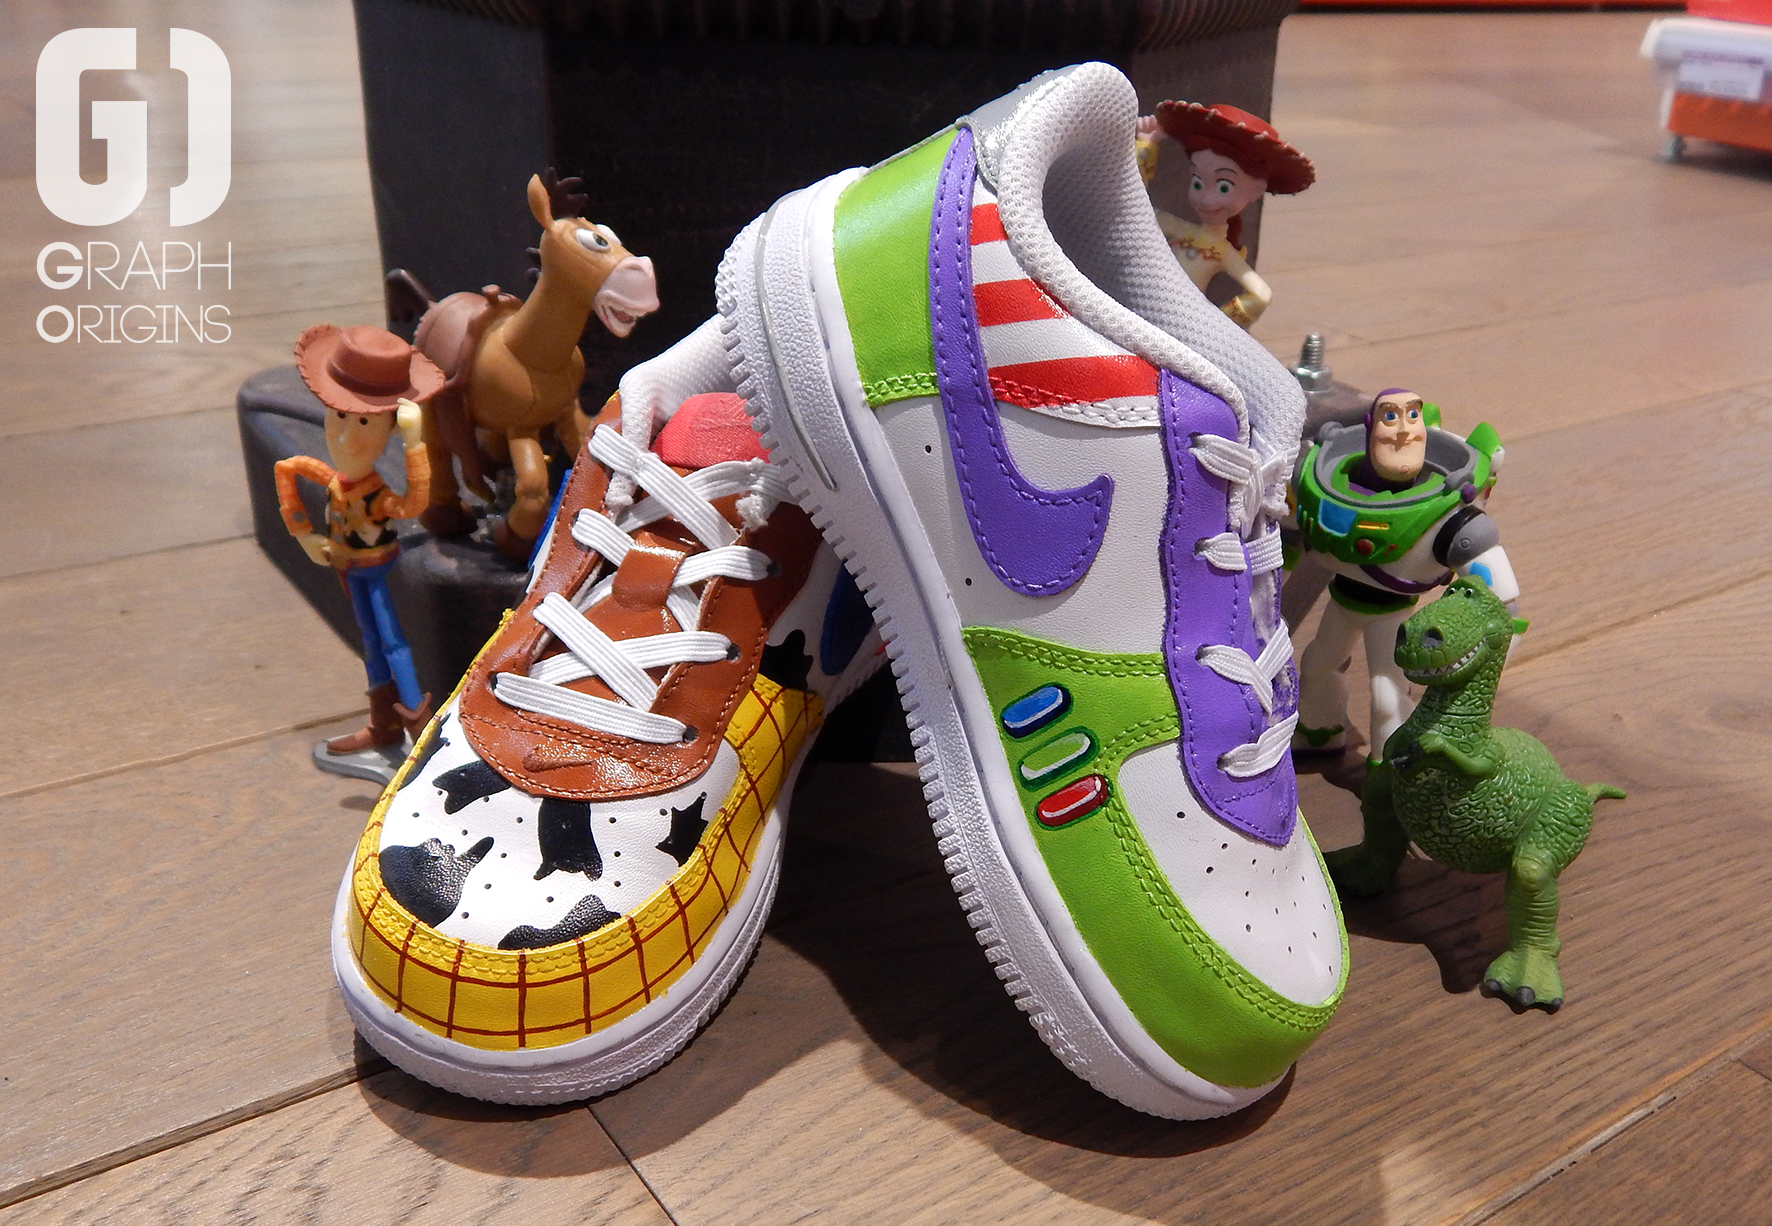 Custom Toy Story sur Nike Air Force 1 Graph Origins 2